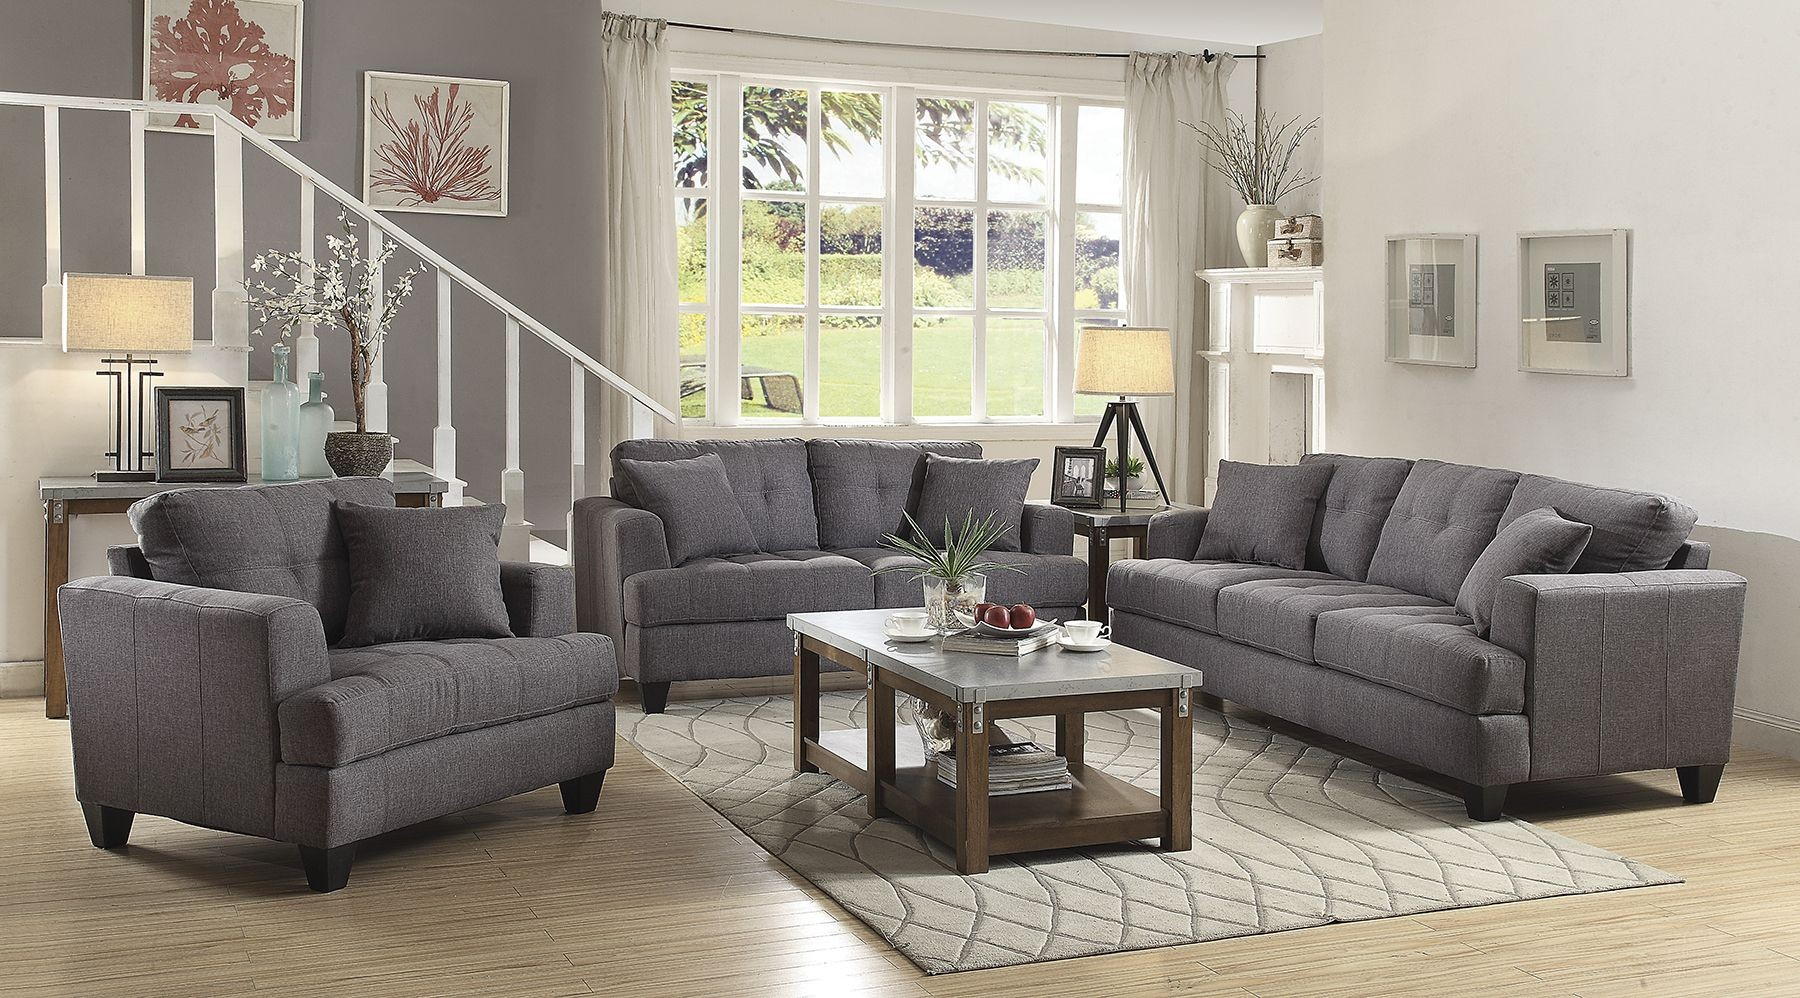 Samuel Gray Living Room Set From Coaster Coleman Furniture